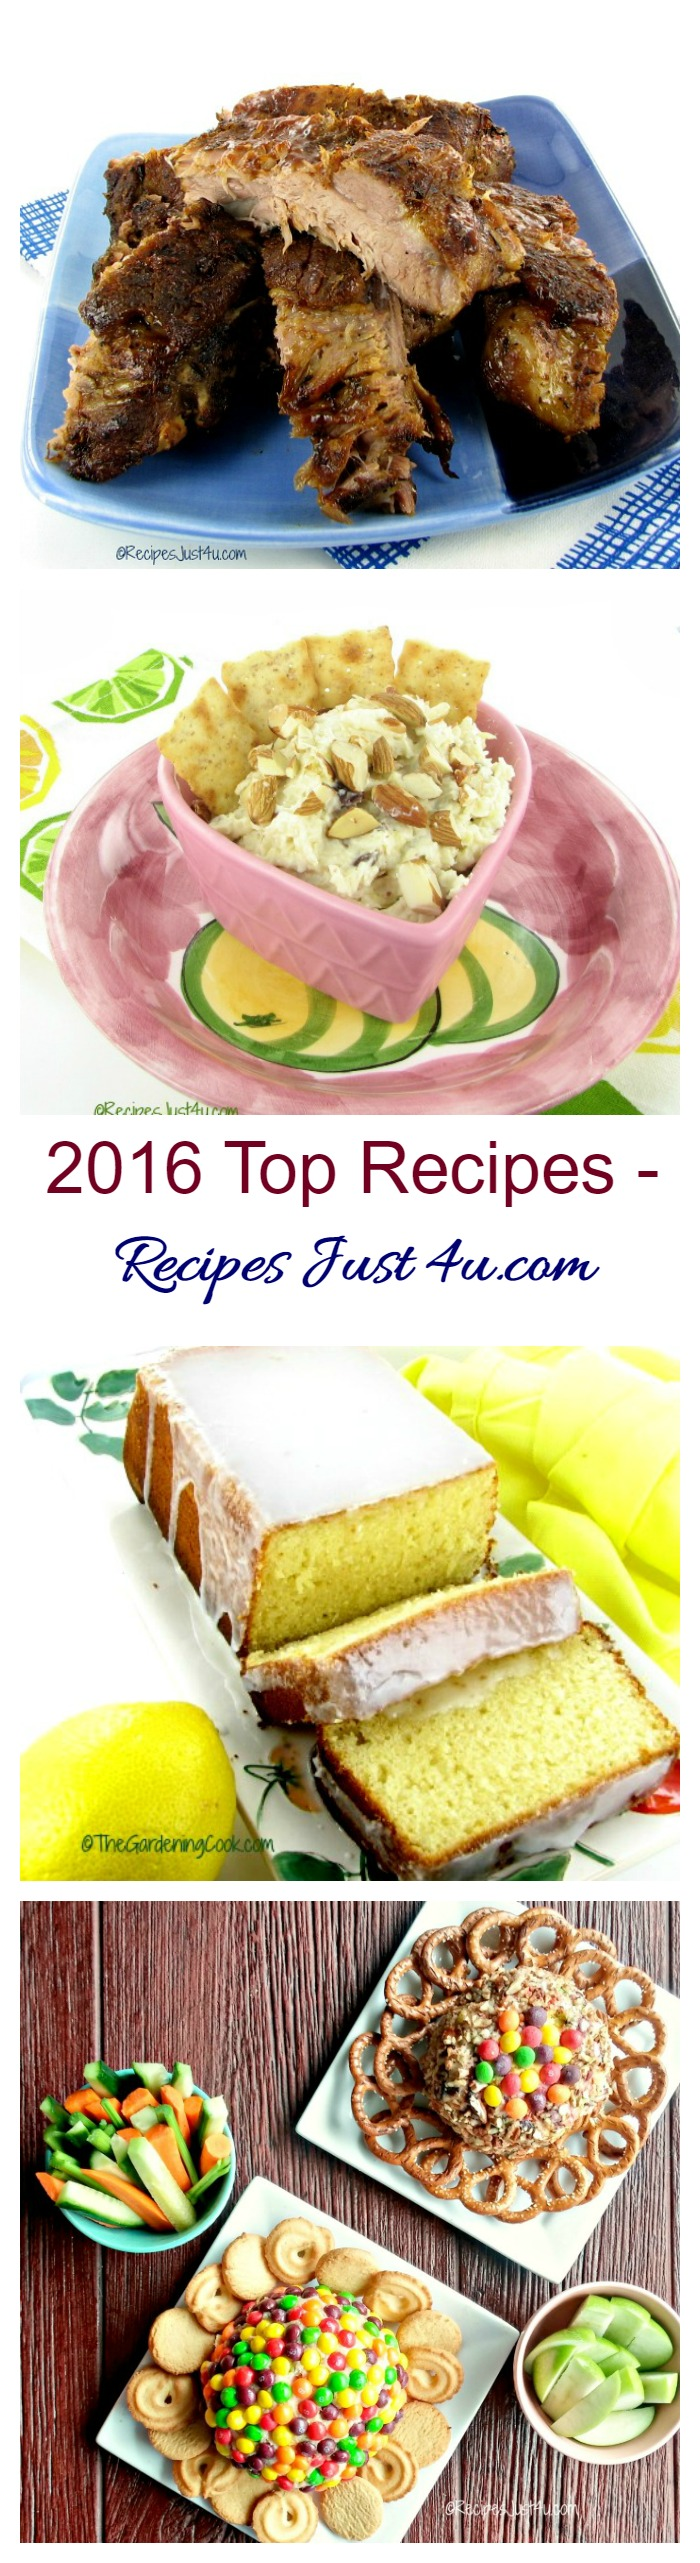 These 2016 Top Recipes posts were the most popular with my readers last year. Perhaps one of them will start the year out right in your kitchen.